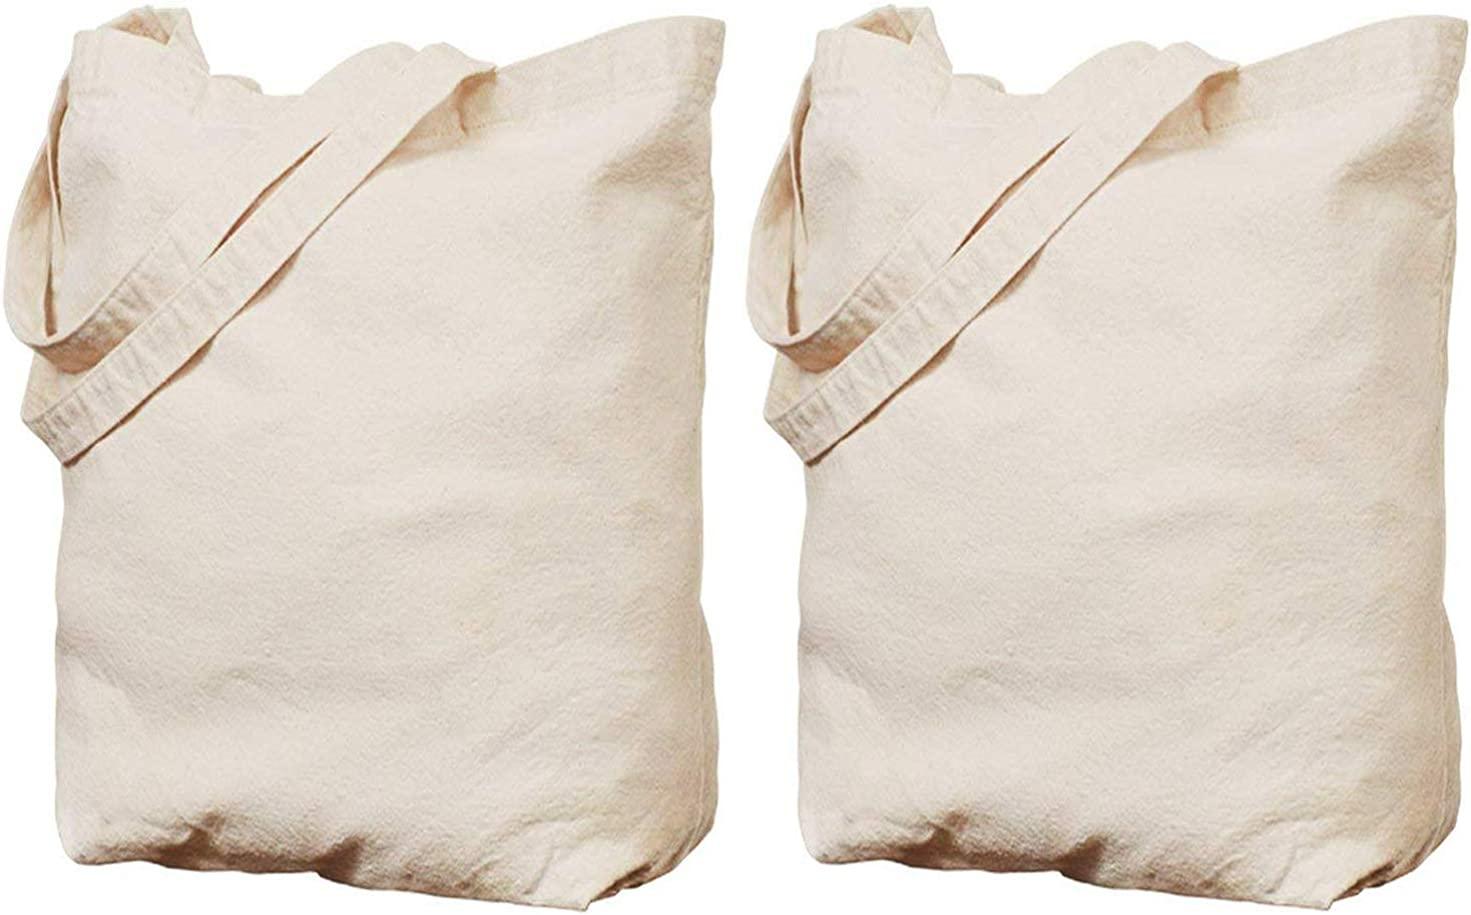 WANBAO 2 Pcs Reusable Canvas Grocery Bags 16 X 16 X 5 Inch Tote Groceries Shopping Bags Bottom Gusset 12 oz White.